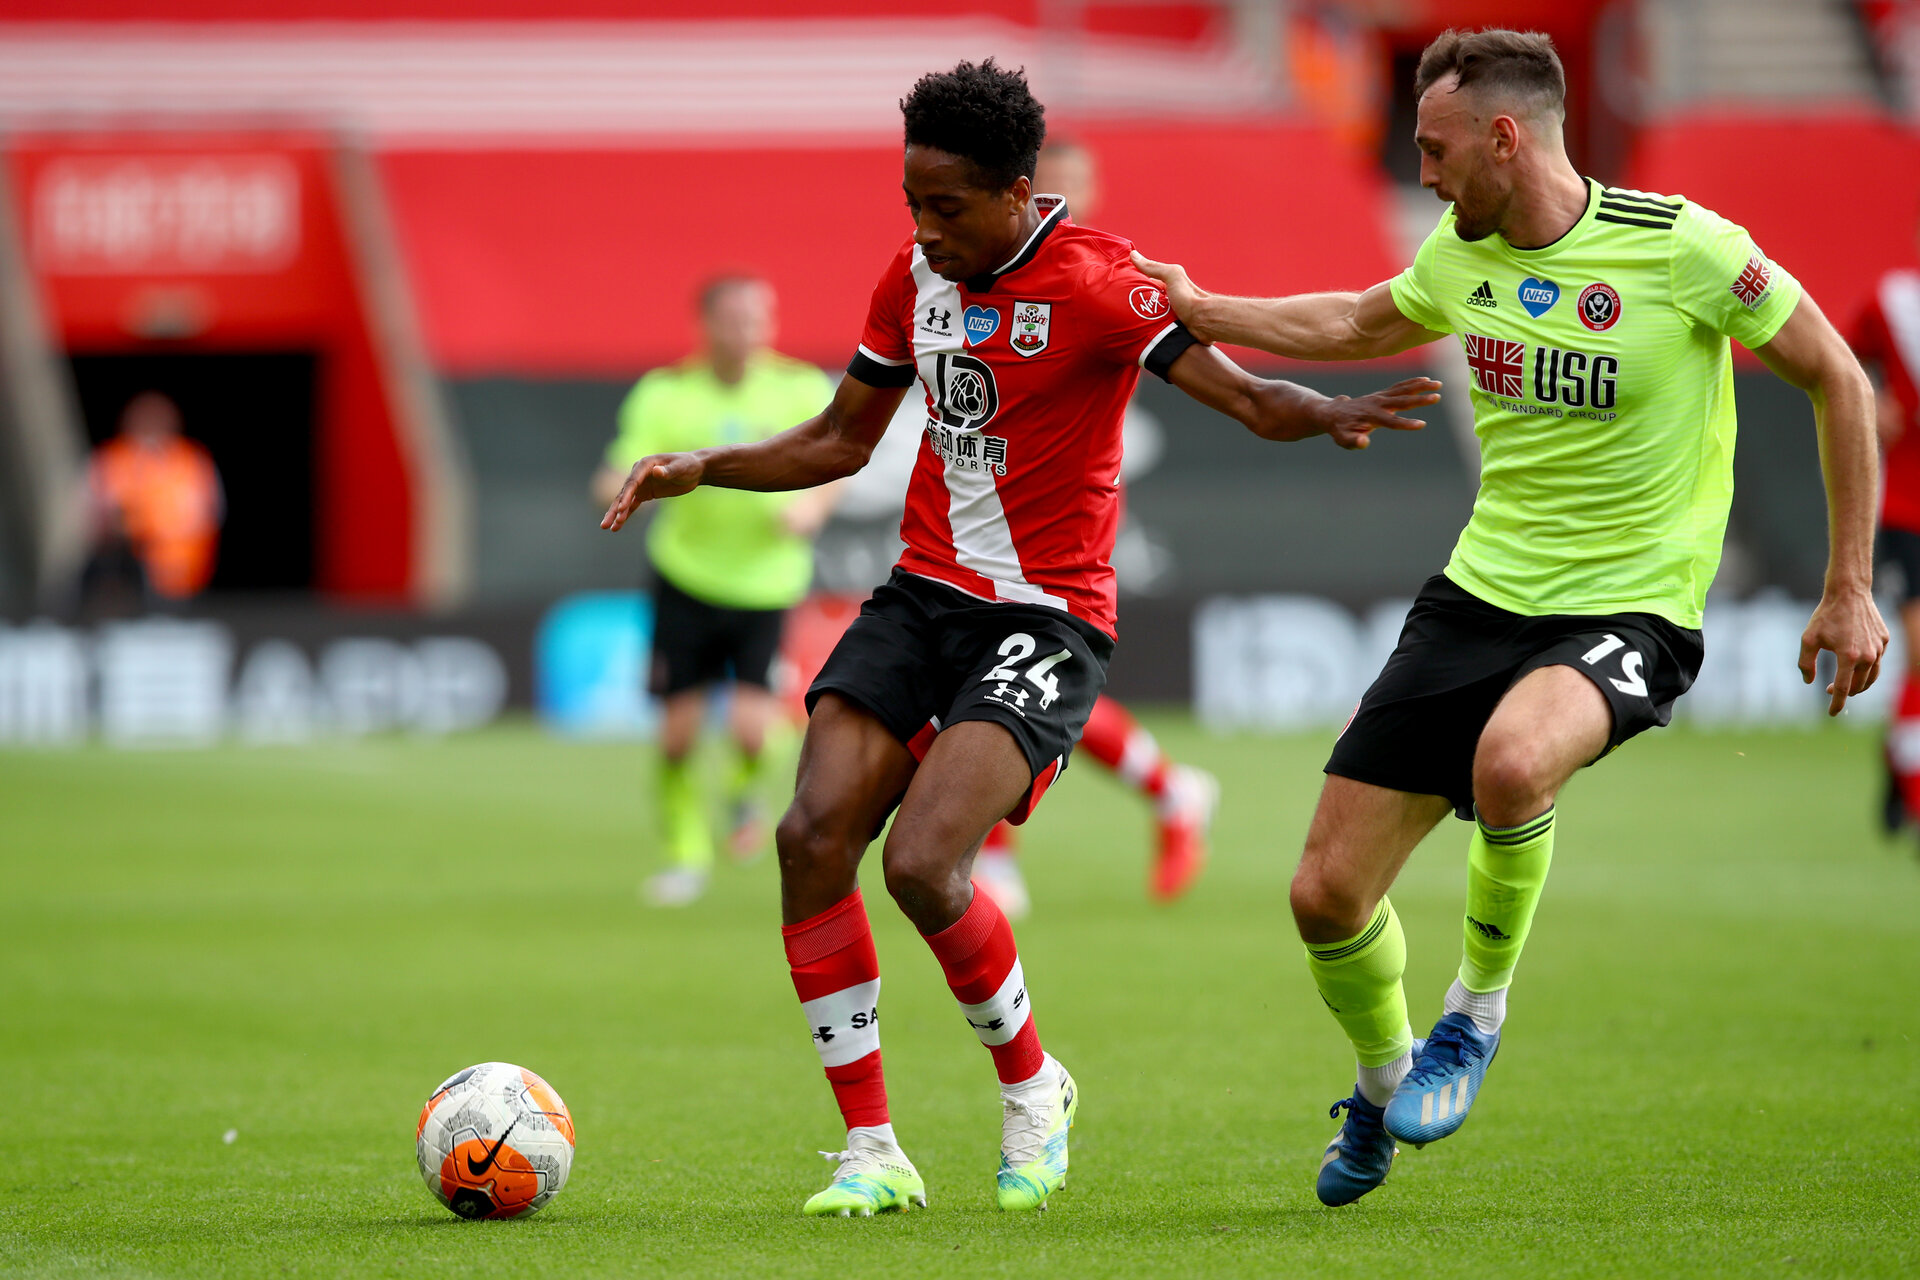 SOUTHAMPTON, ENGLAND - JULY 26: Kyle Walker-Peters (L) of Southampton and Jack Robinson (R) of Sheffield during the Premier League match between Southampton FC and Sheffield United at St Mary's Stadium on April 17, 2020 in Southampton, United Kingdom. (Photo by Matt Watson/Southampton FC via Getty Images)